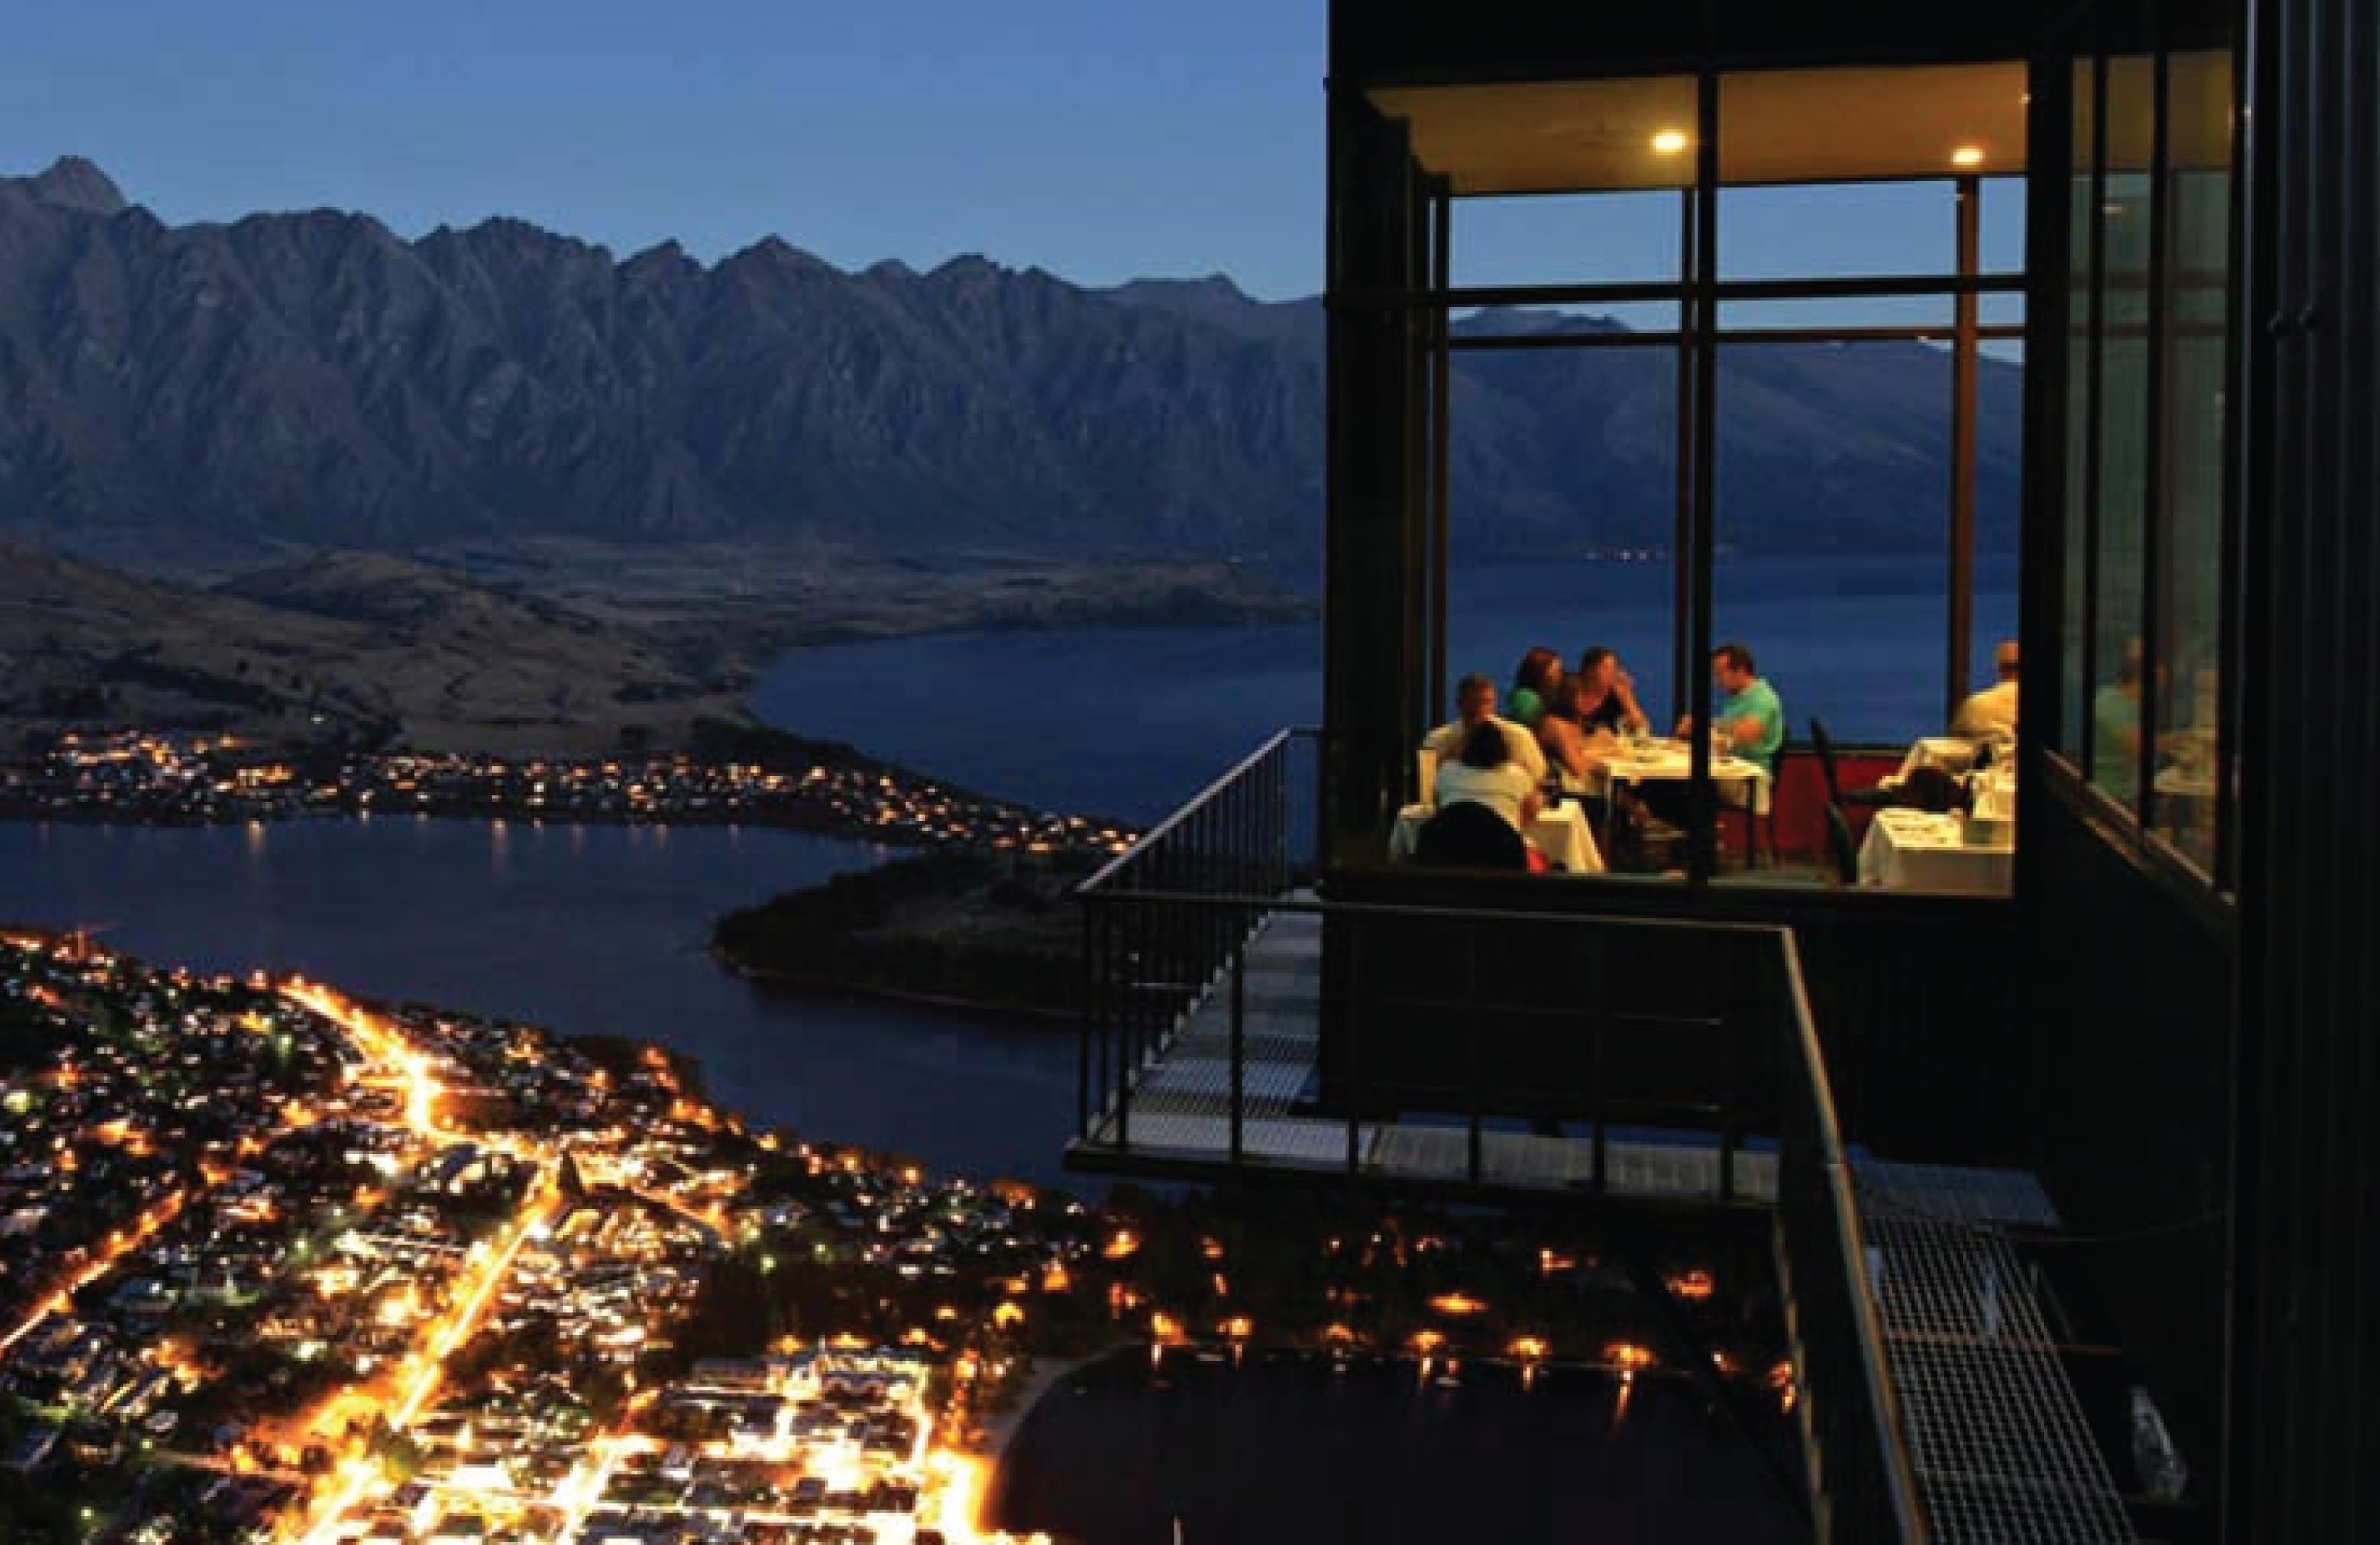 Location for the NZBSA dinner